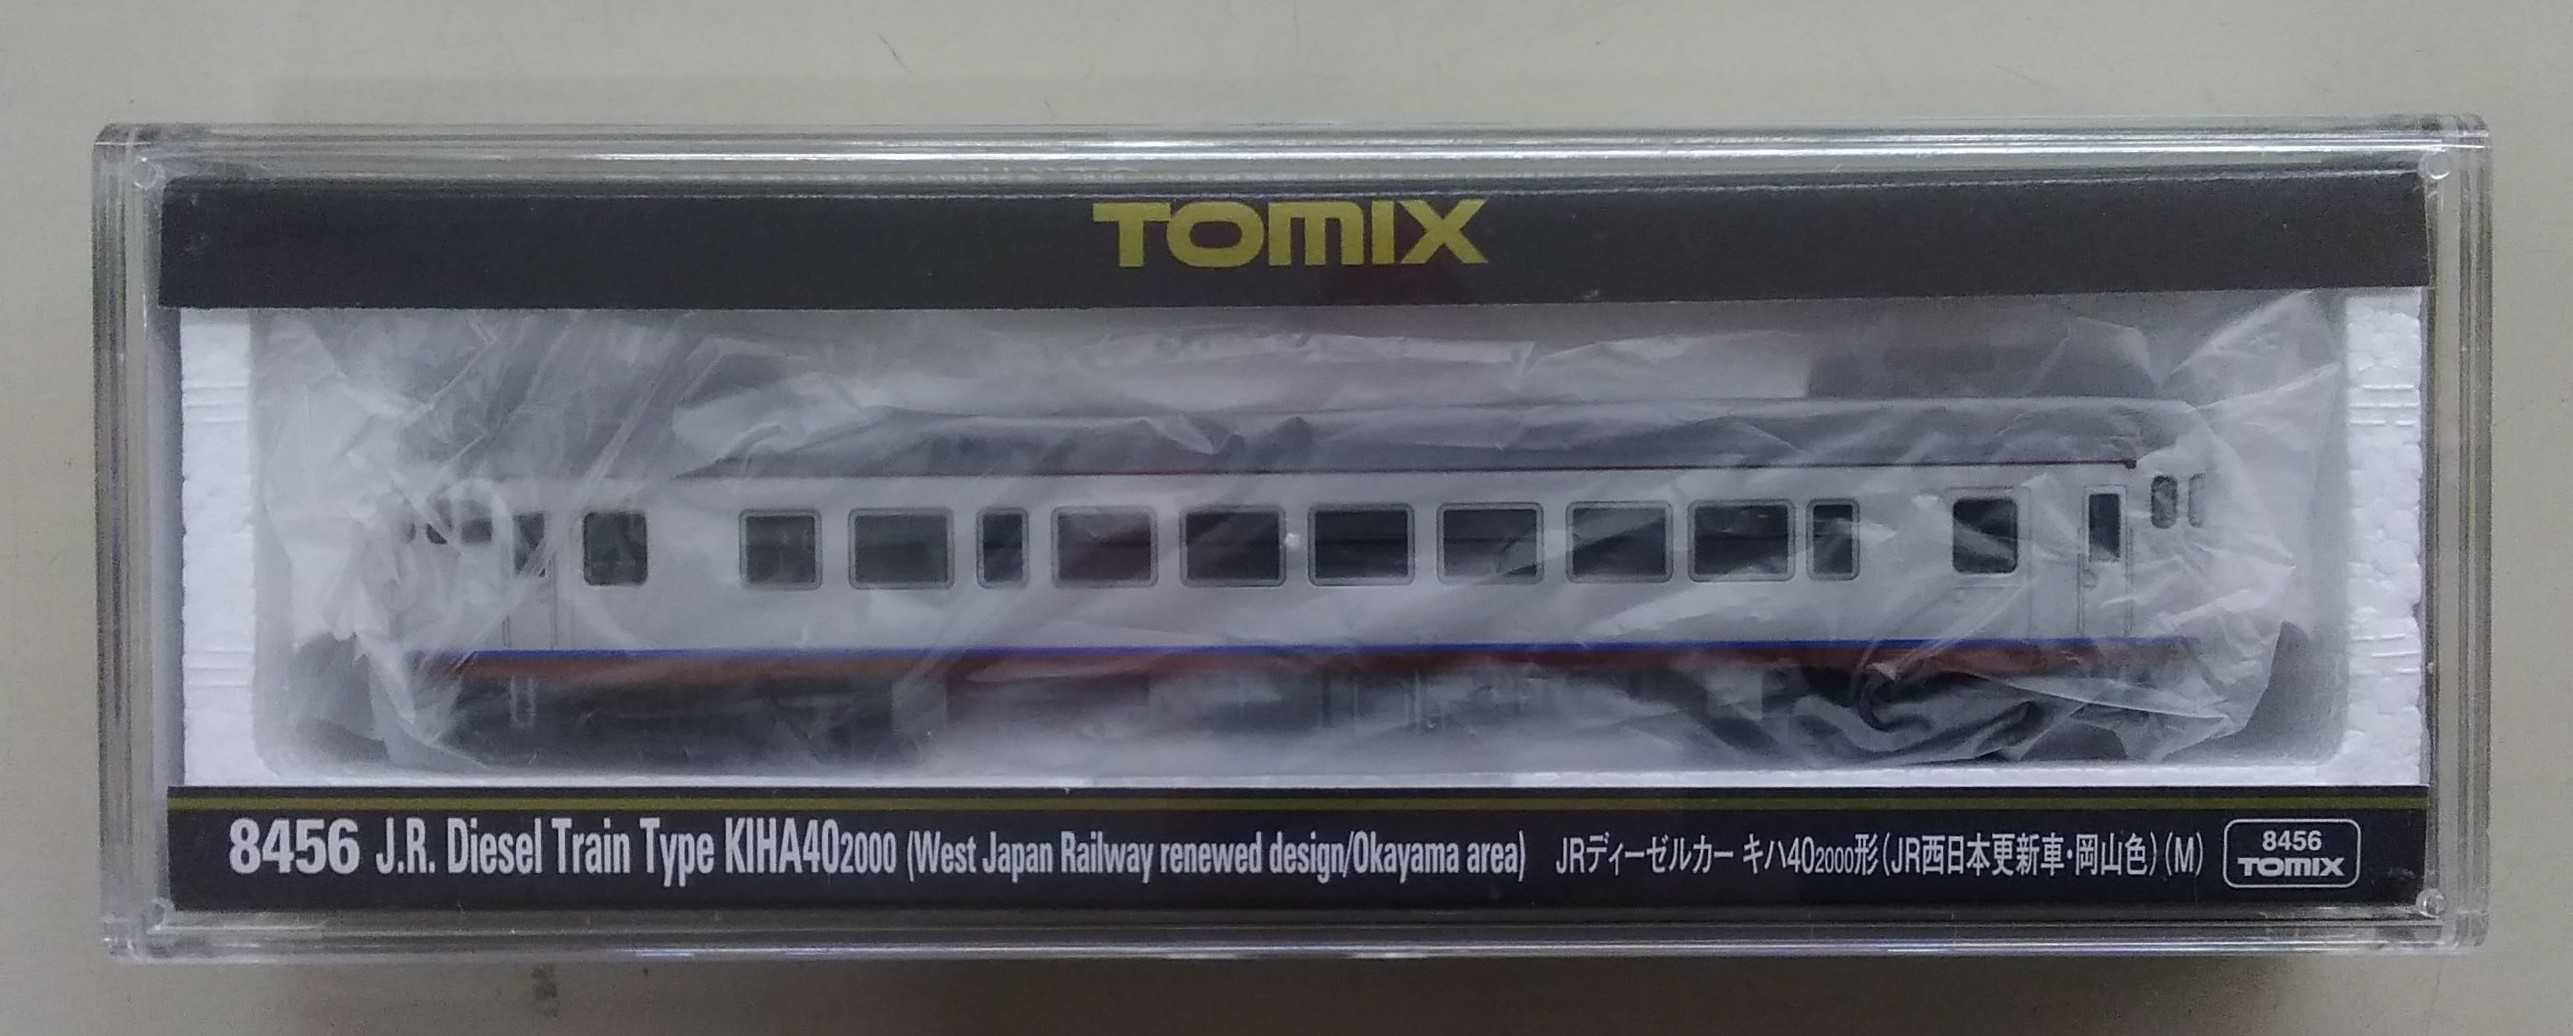 8456|TOMIX